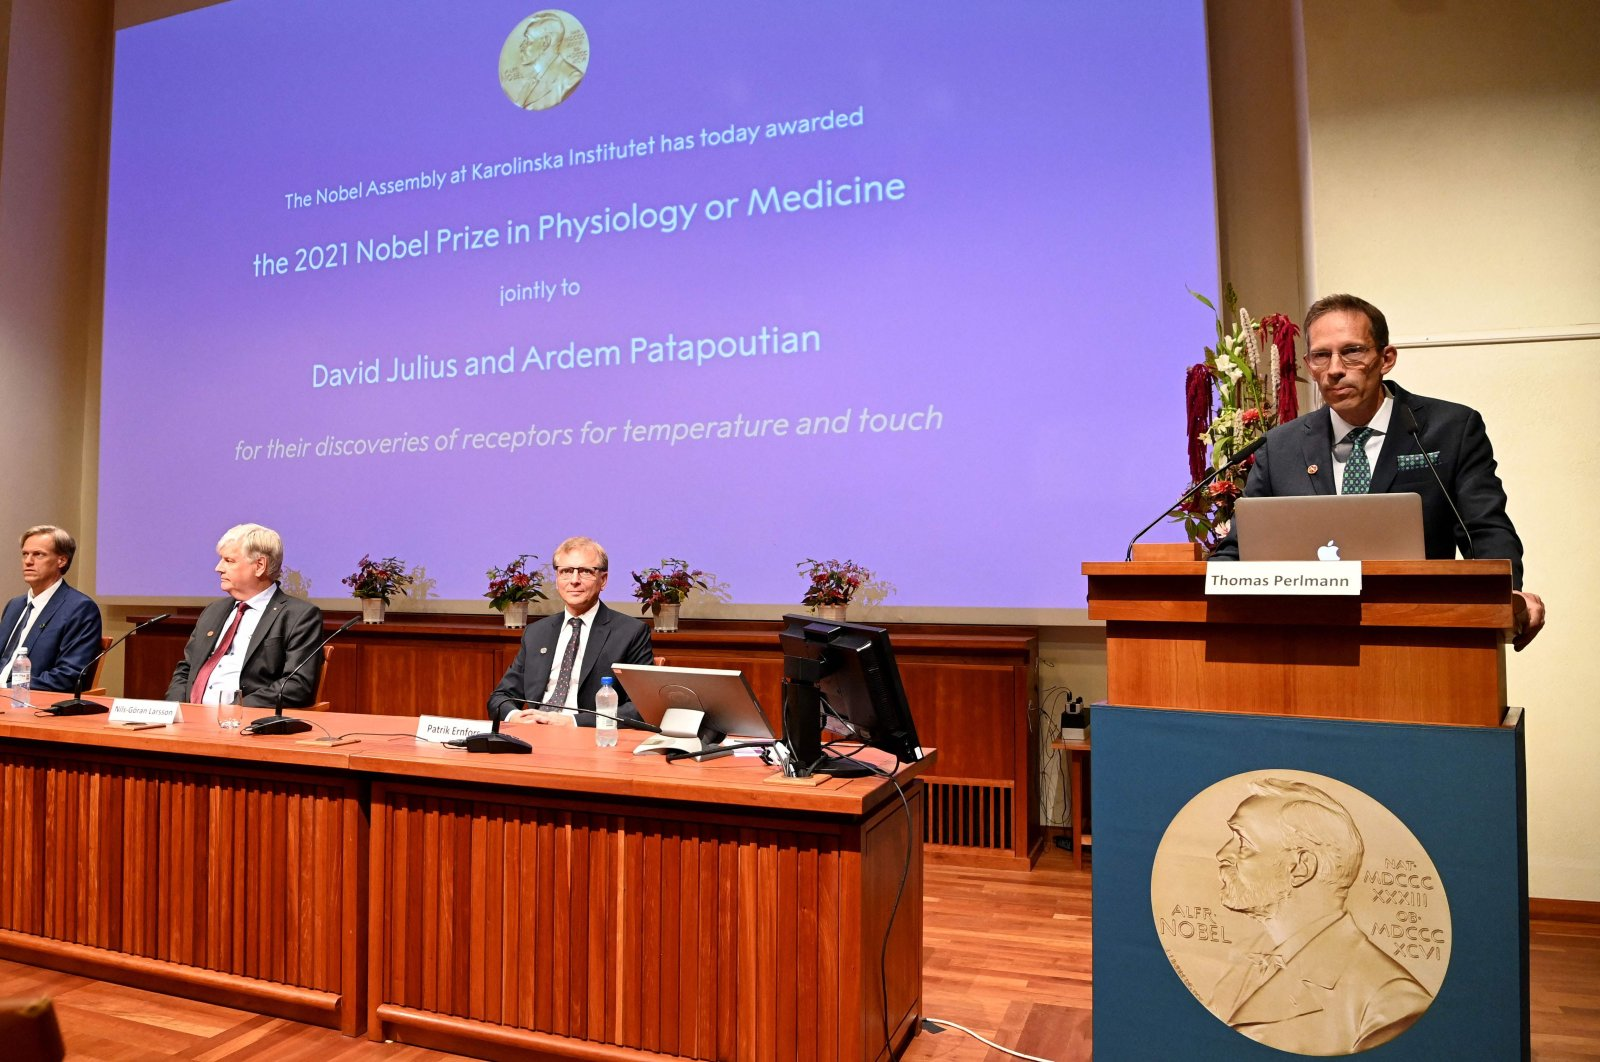 Thomas Perlmann (R), the secretary of the Nobel Committee, addresses a press conference to announce the winner of the 2021 Nobel Prize in Physiology or Medicine at the Karolinska Institute in Stockholm, Sweden, Oct. 4, 2021. (AFP Photo)